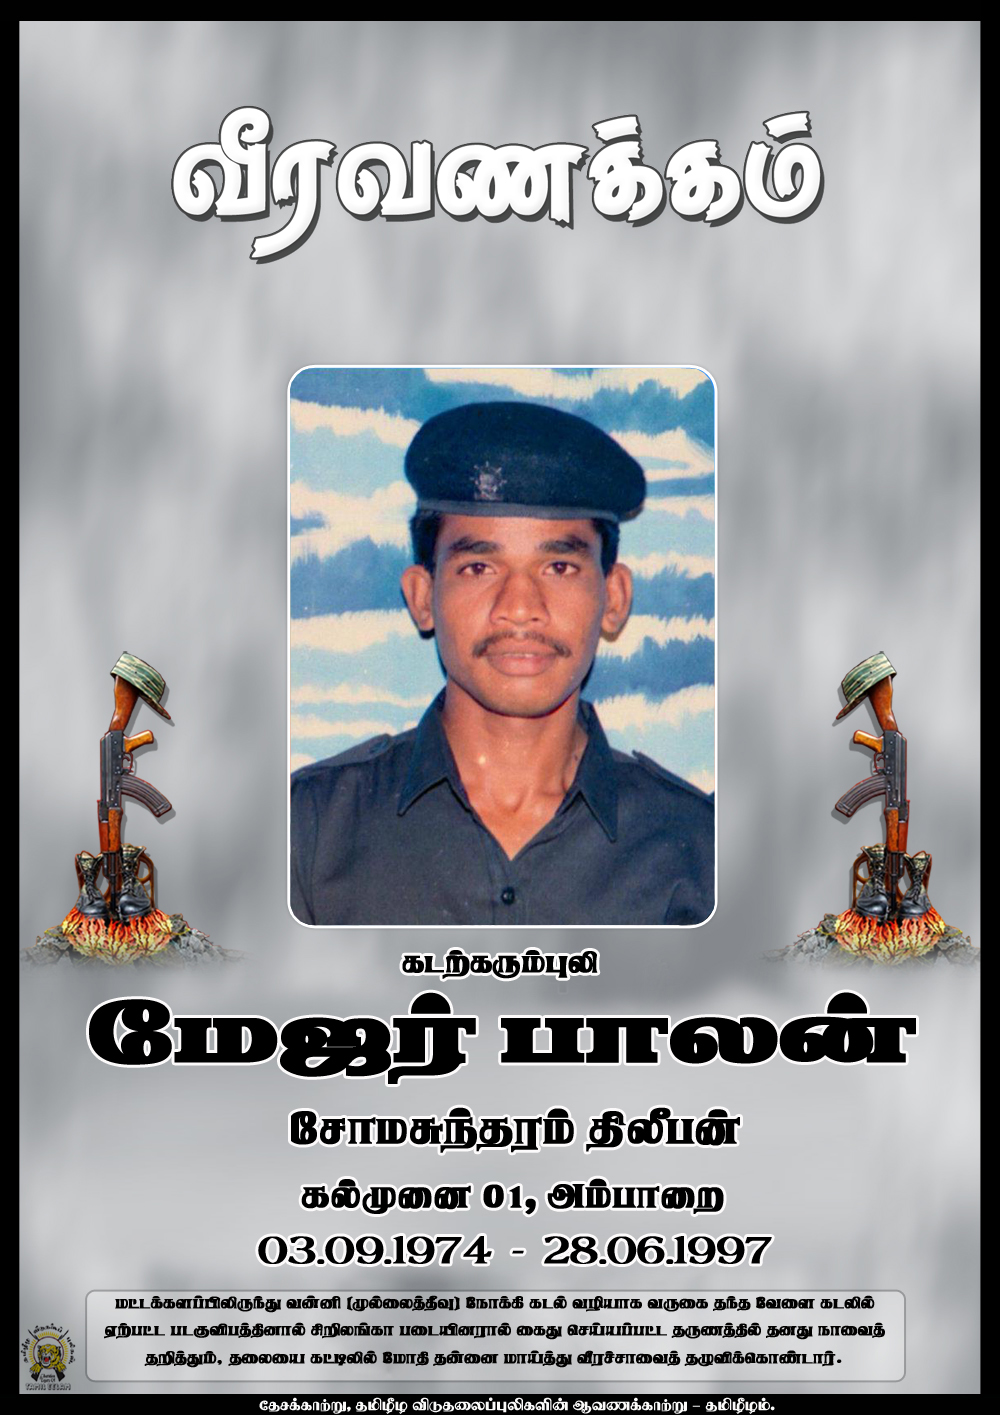 Sea Black Tiger Major Valavan Murugesu Uthayakumar Manipay Jaffna